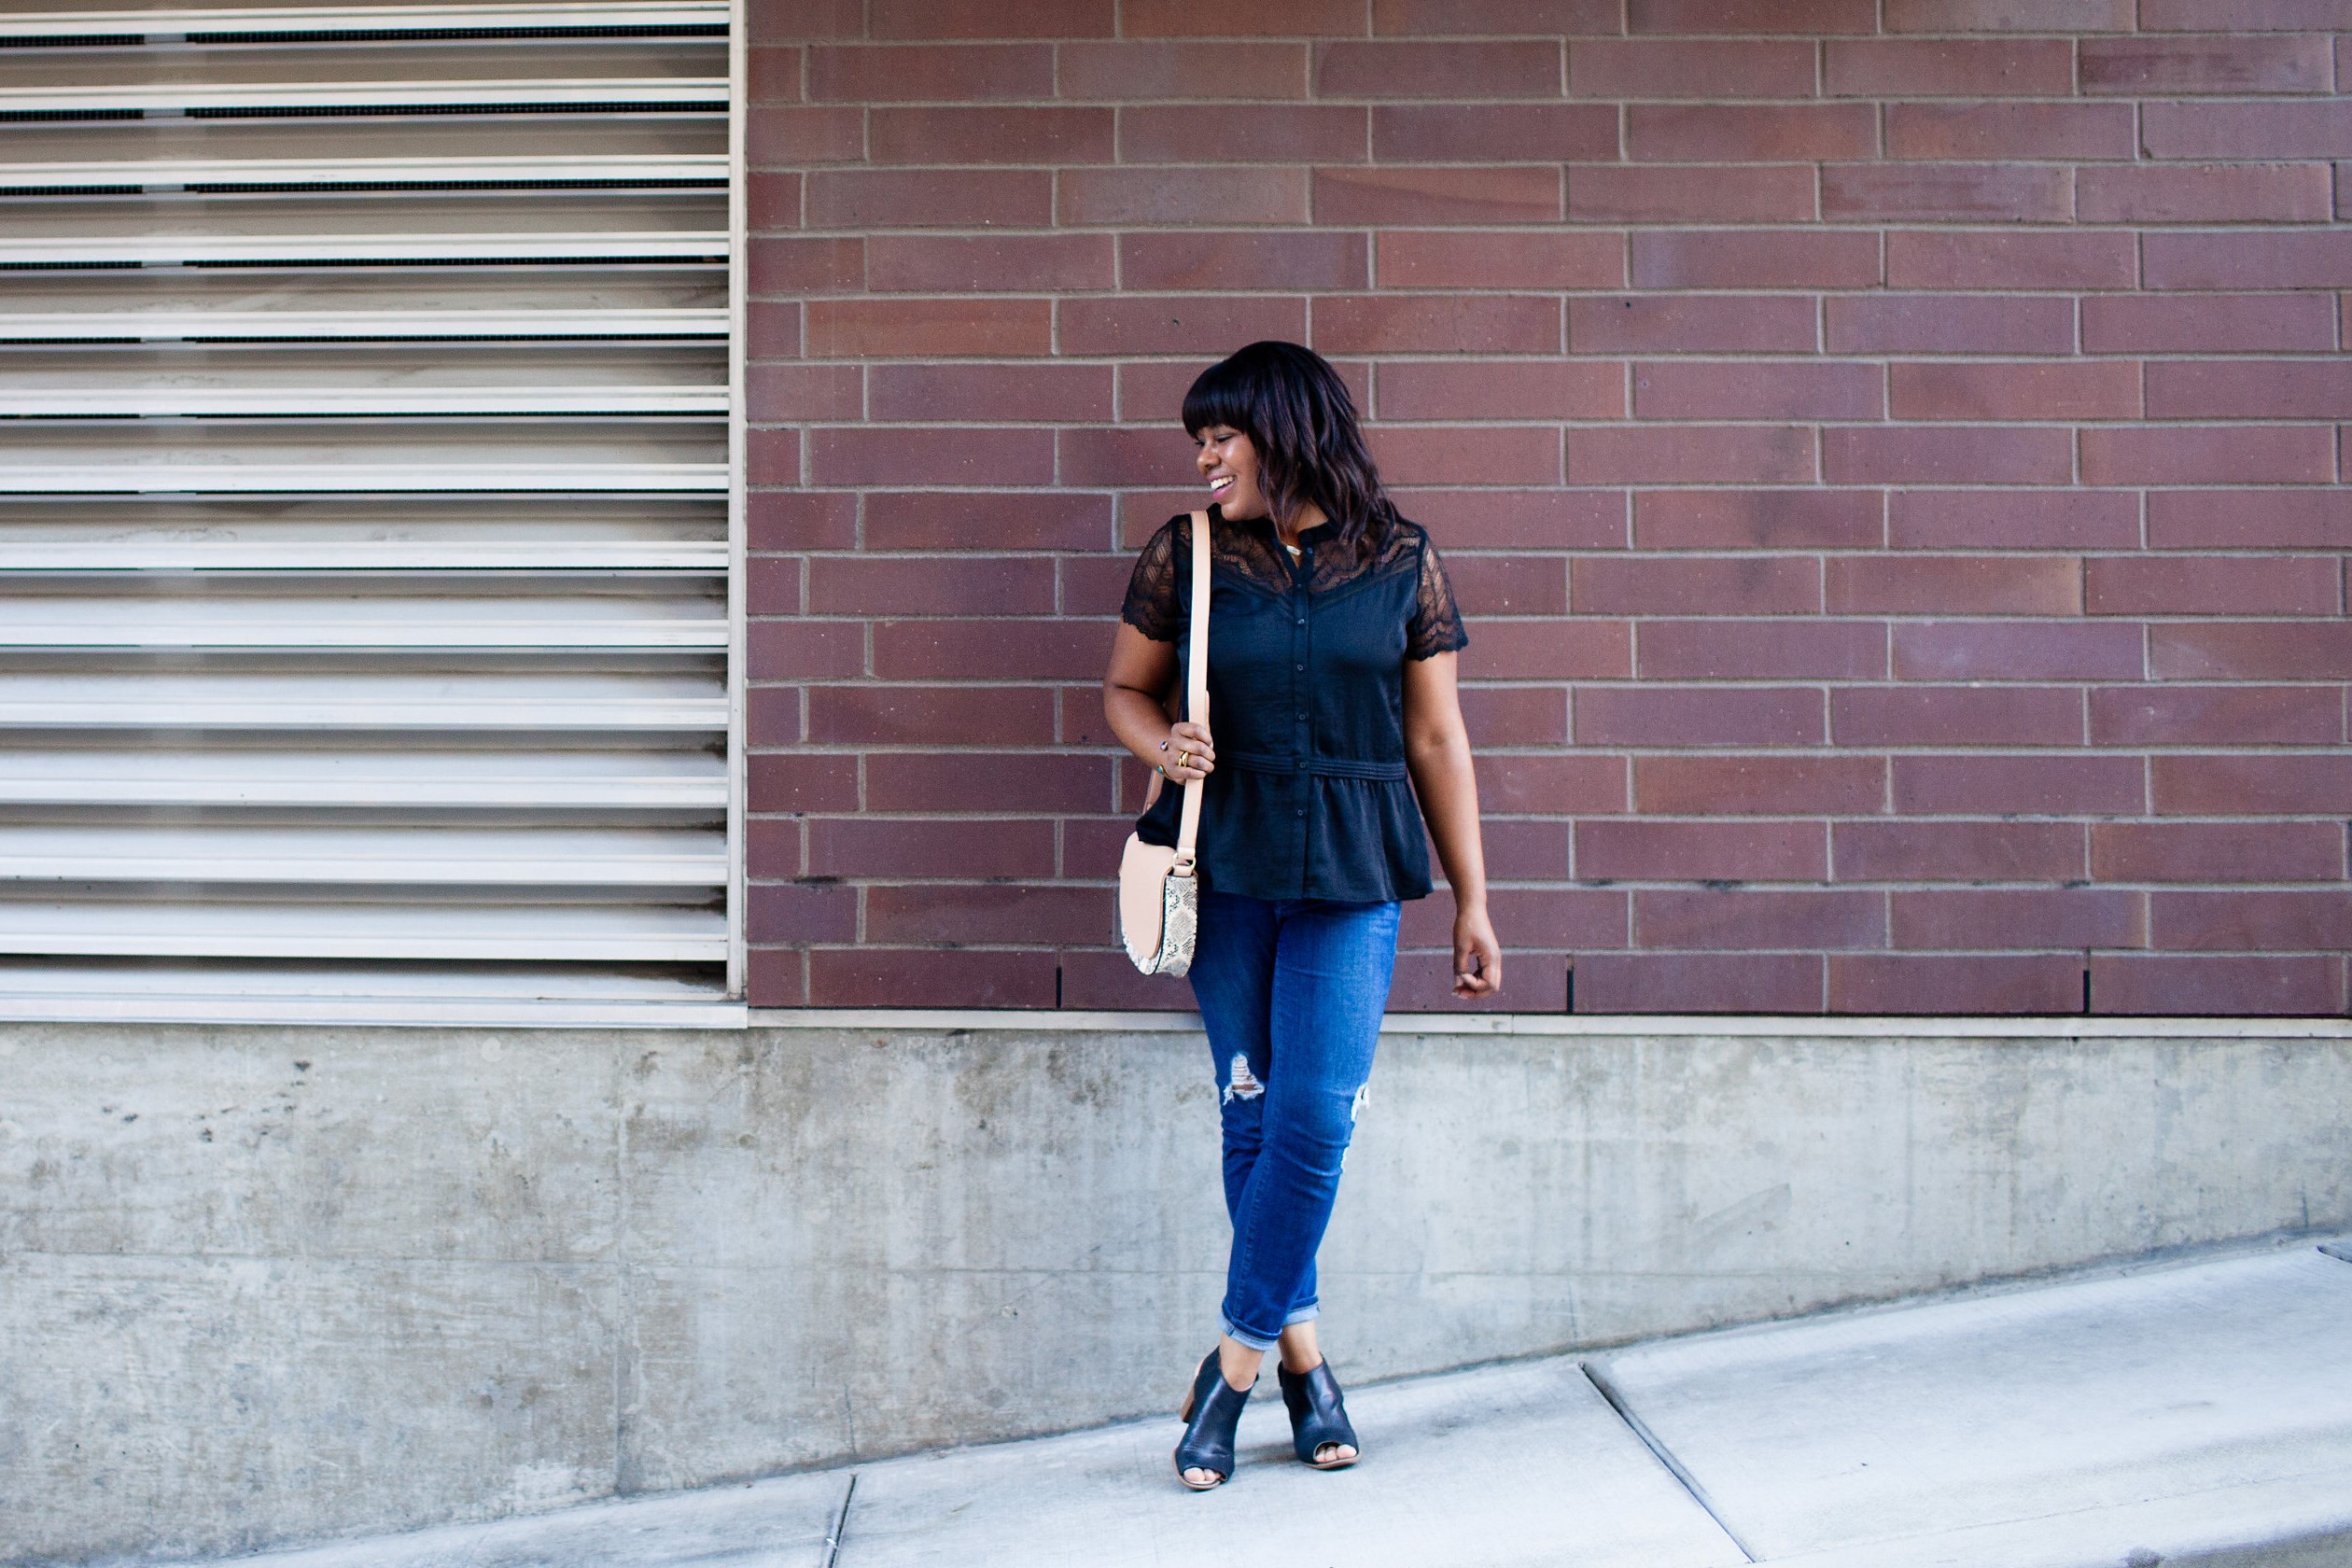 Lace is a material that I will never grow tired of. It's beautifully timeless and looks great with jeans. My favorite lace combo? Understated like the top in today's post. It's subtle but romantic.